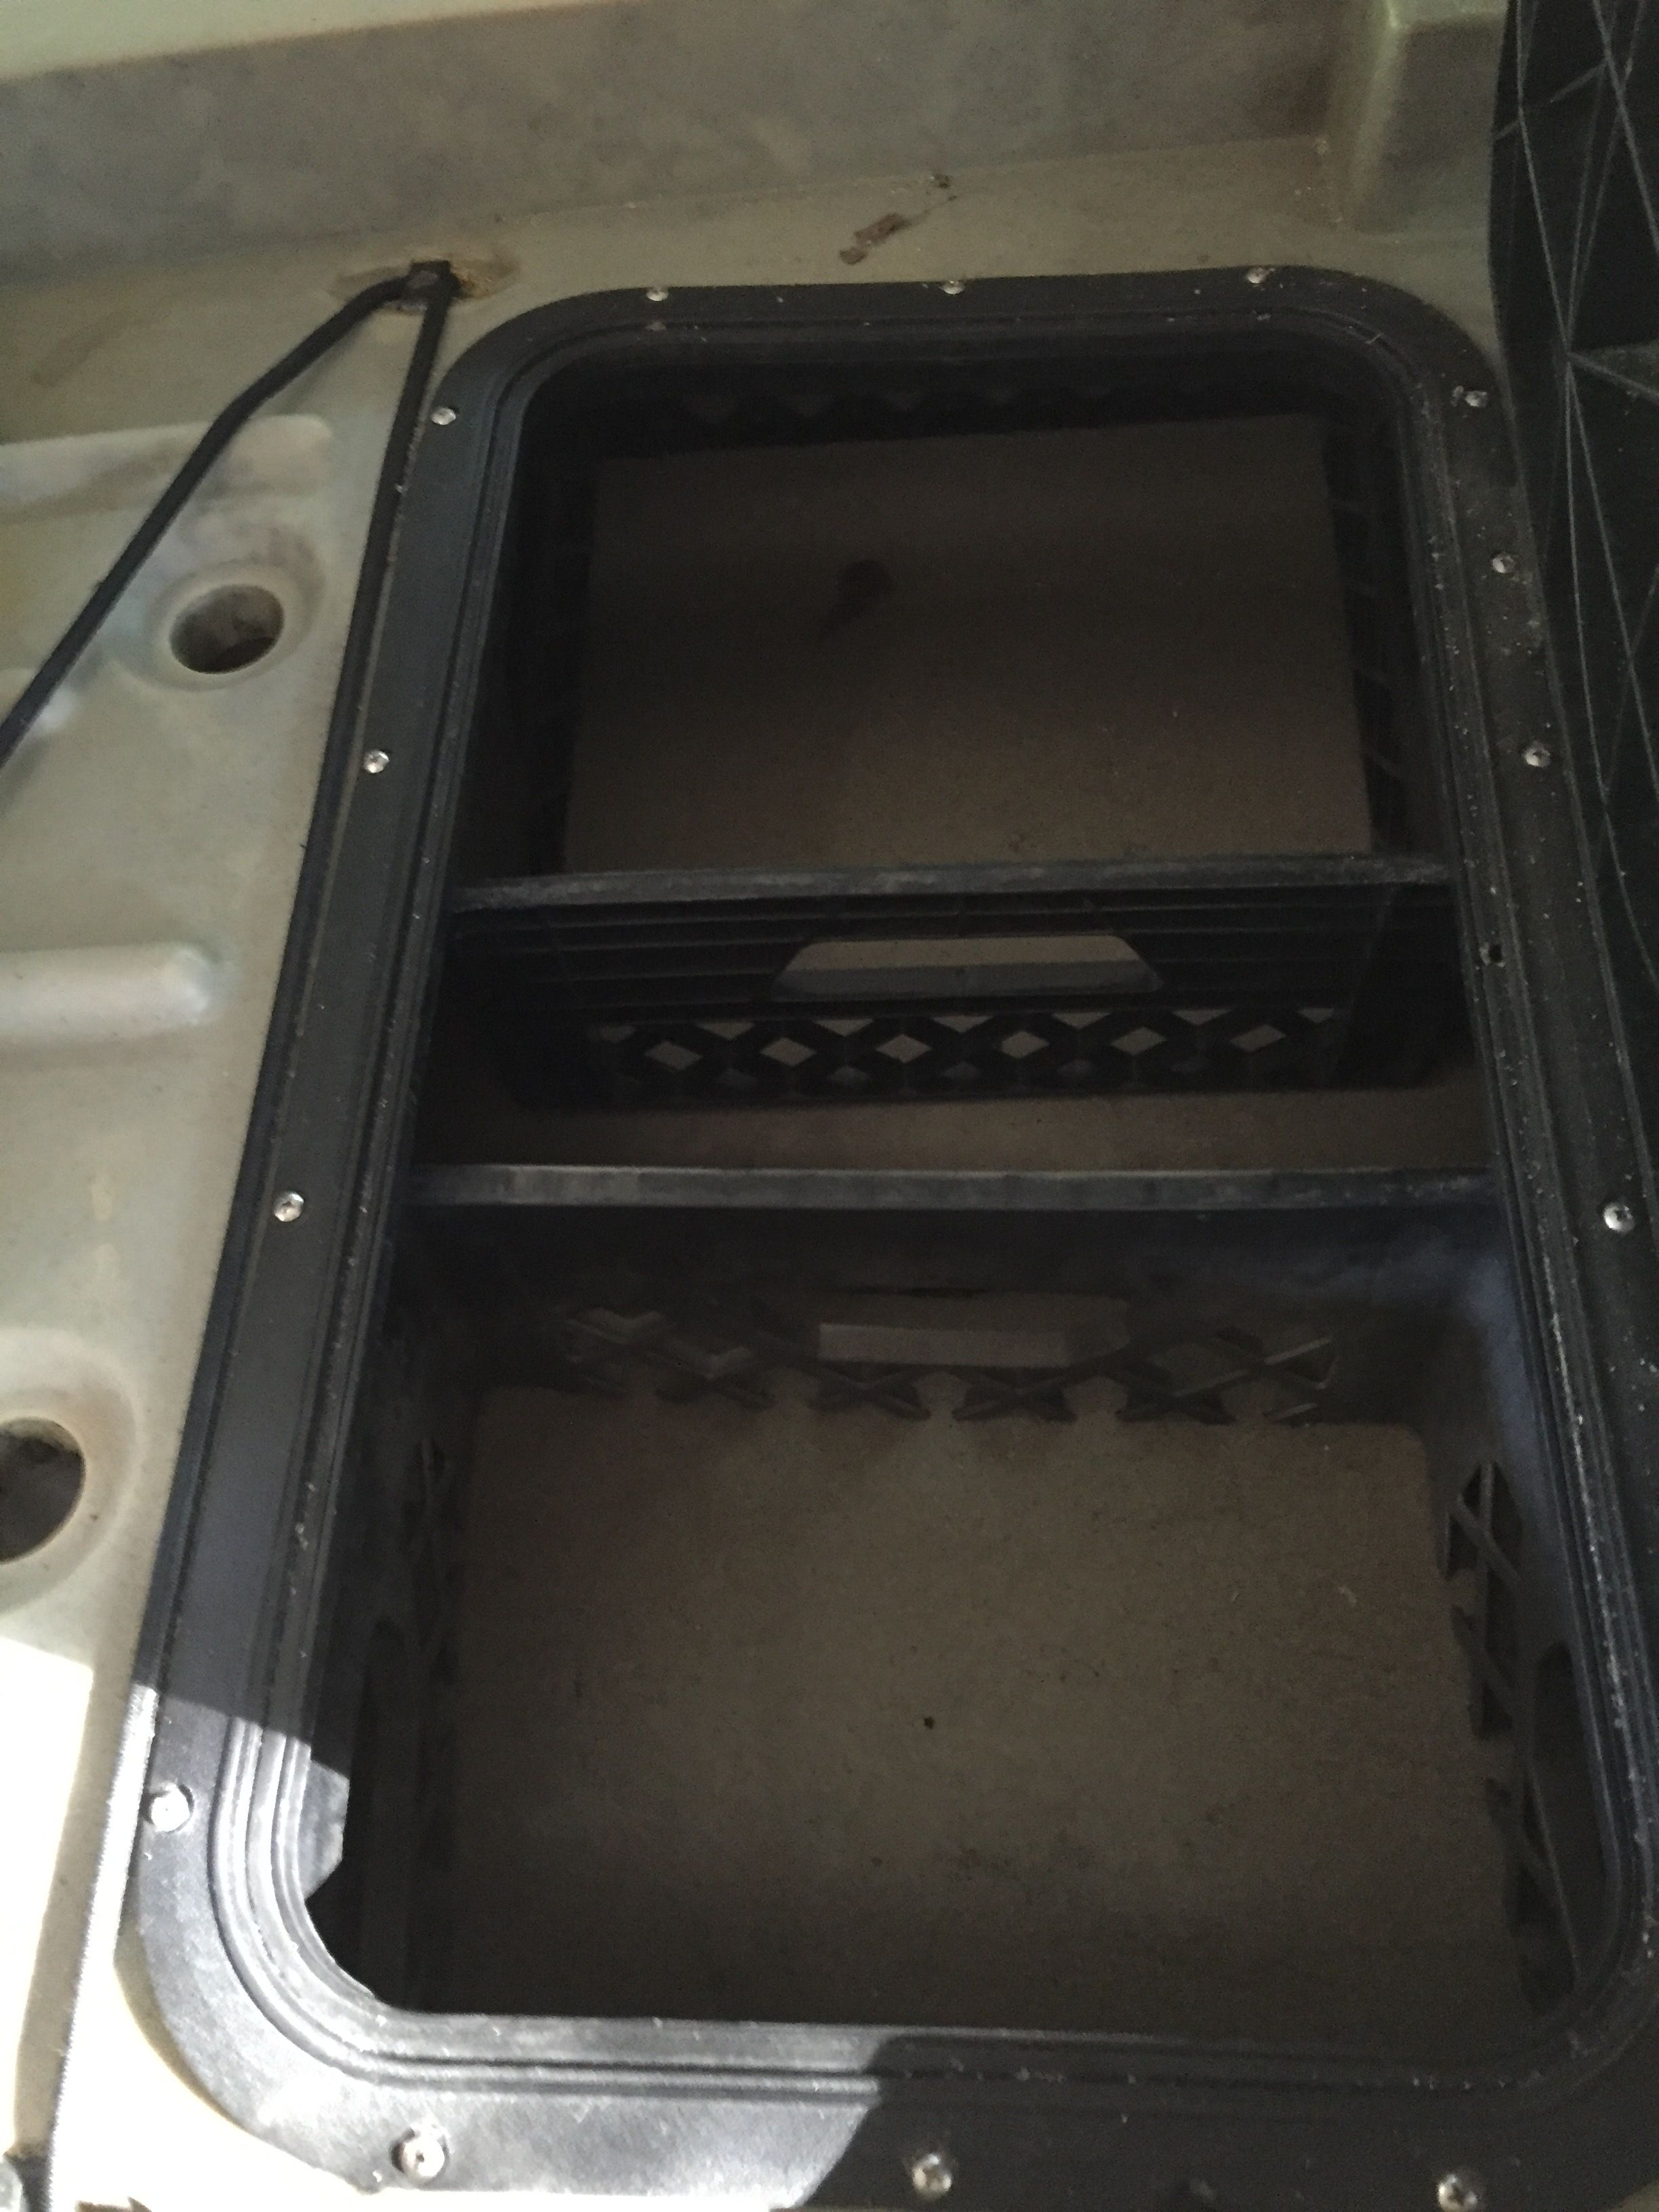 Ascend Fs128t Kayak Rear Storage Hatch Gear Tends To Slide All Over Battery Wiring Diagram The Place In Belly Of With Milk Crates Cut And Placed Inside